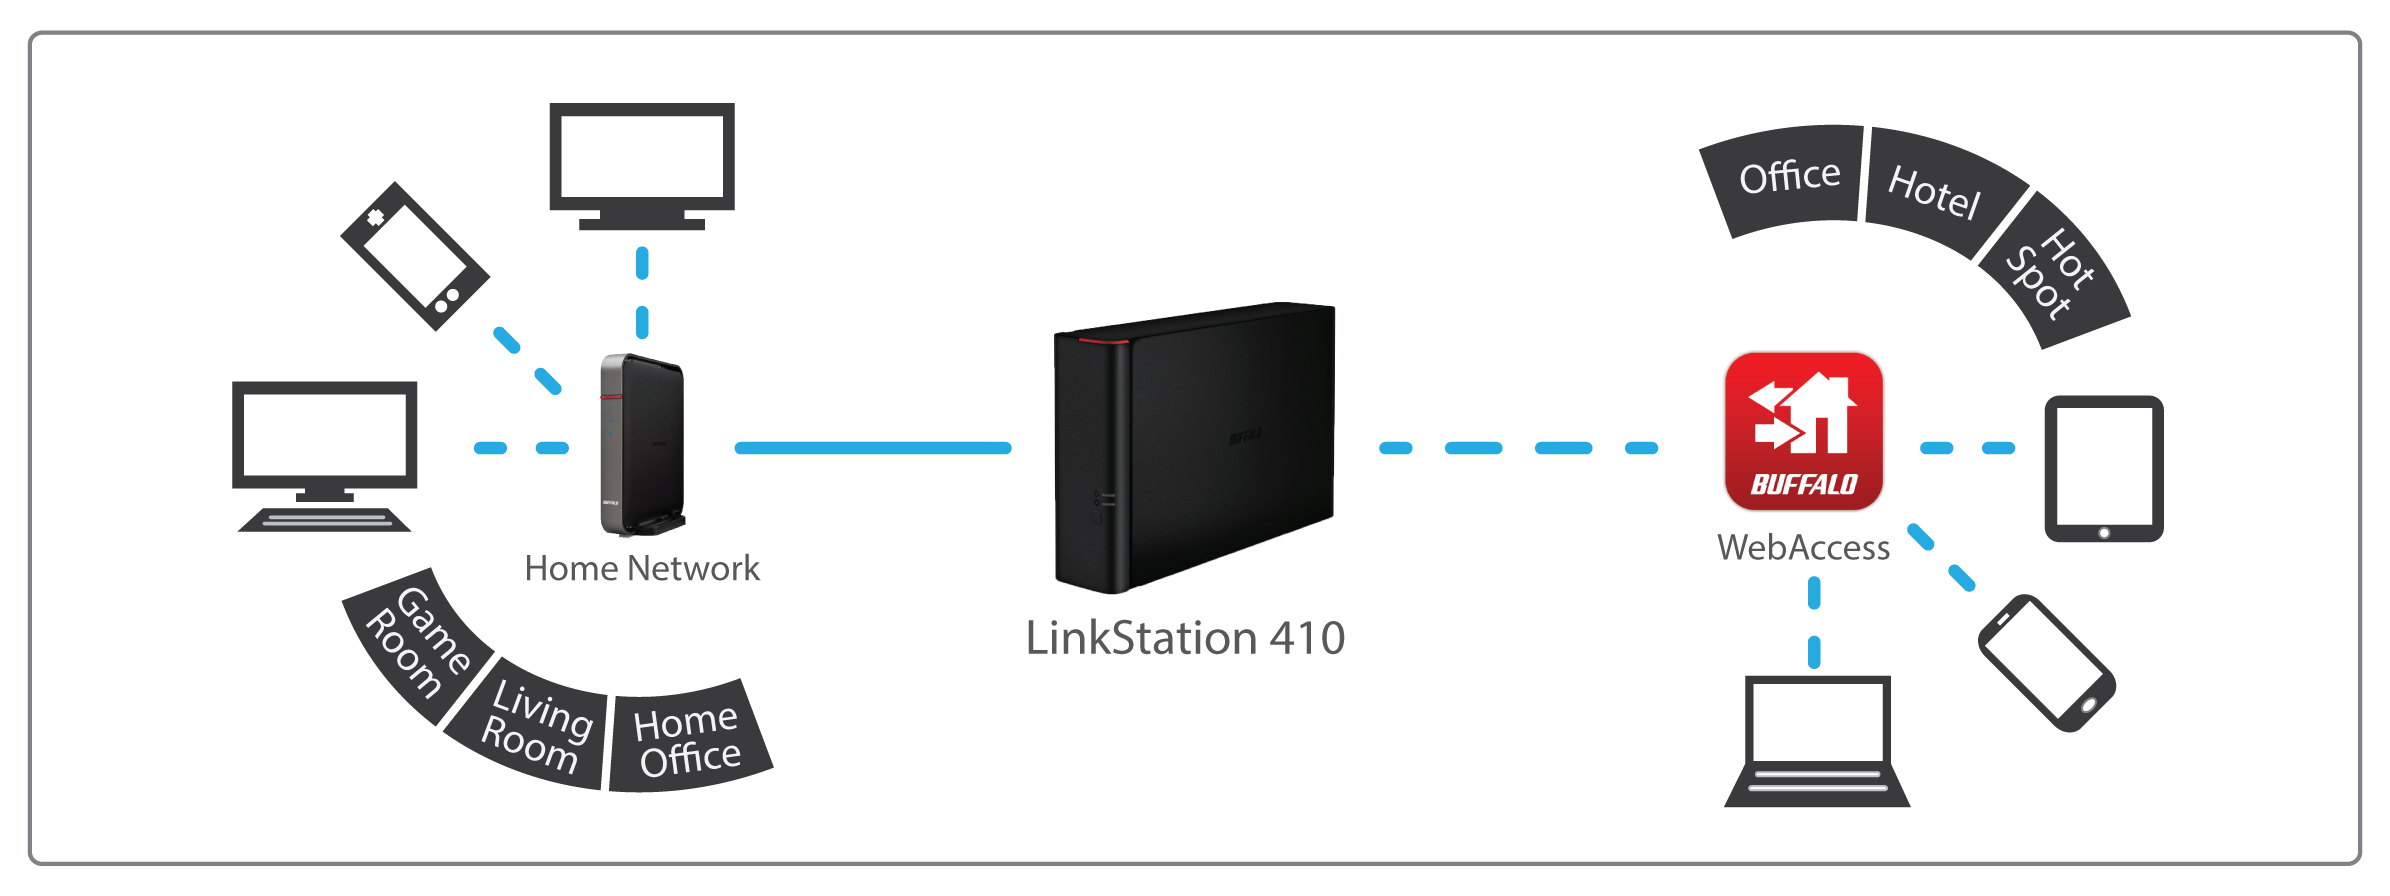 Linkstation 210 2tb Personal Cloud Storage With Hard Drives Included To Build Usb Power Injector For External Circuit Diagram Ls210d0201